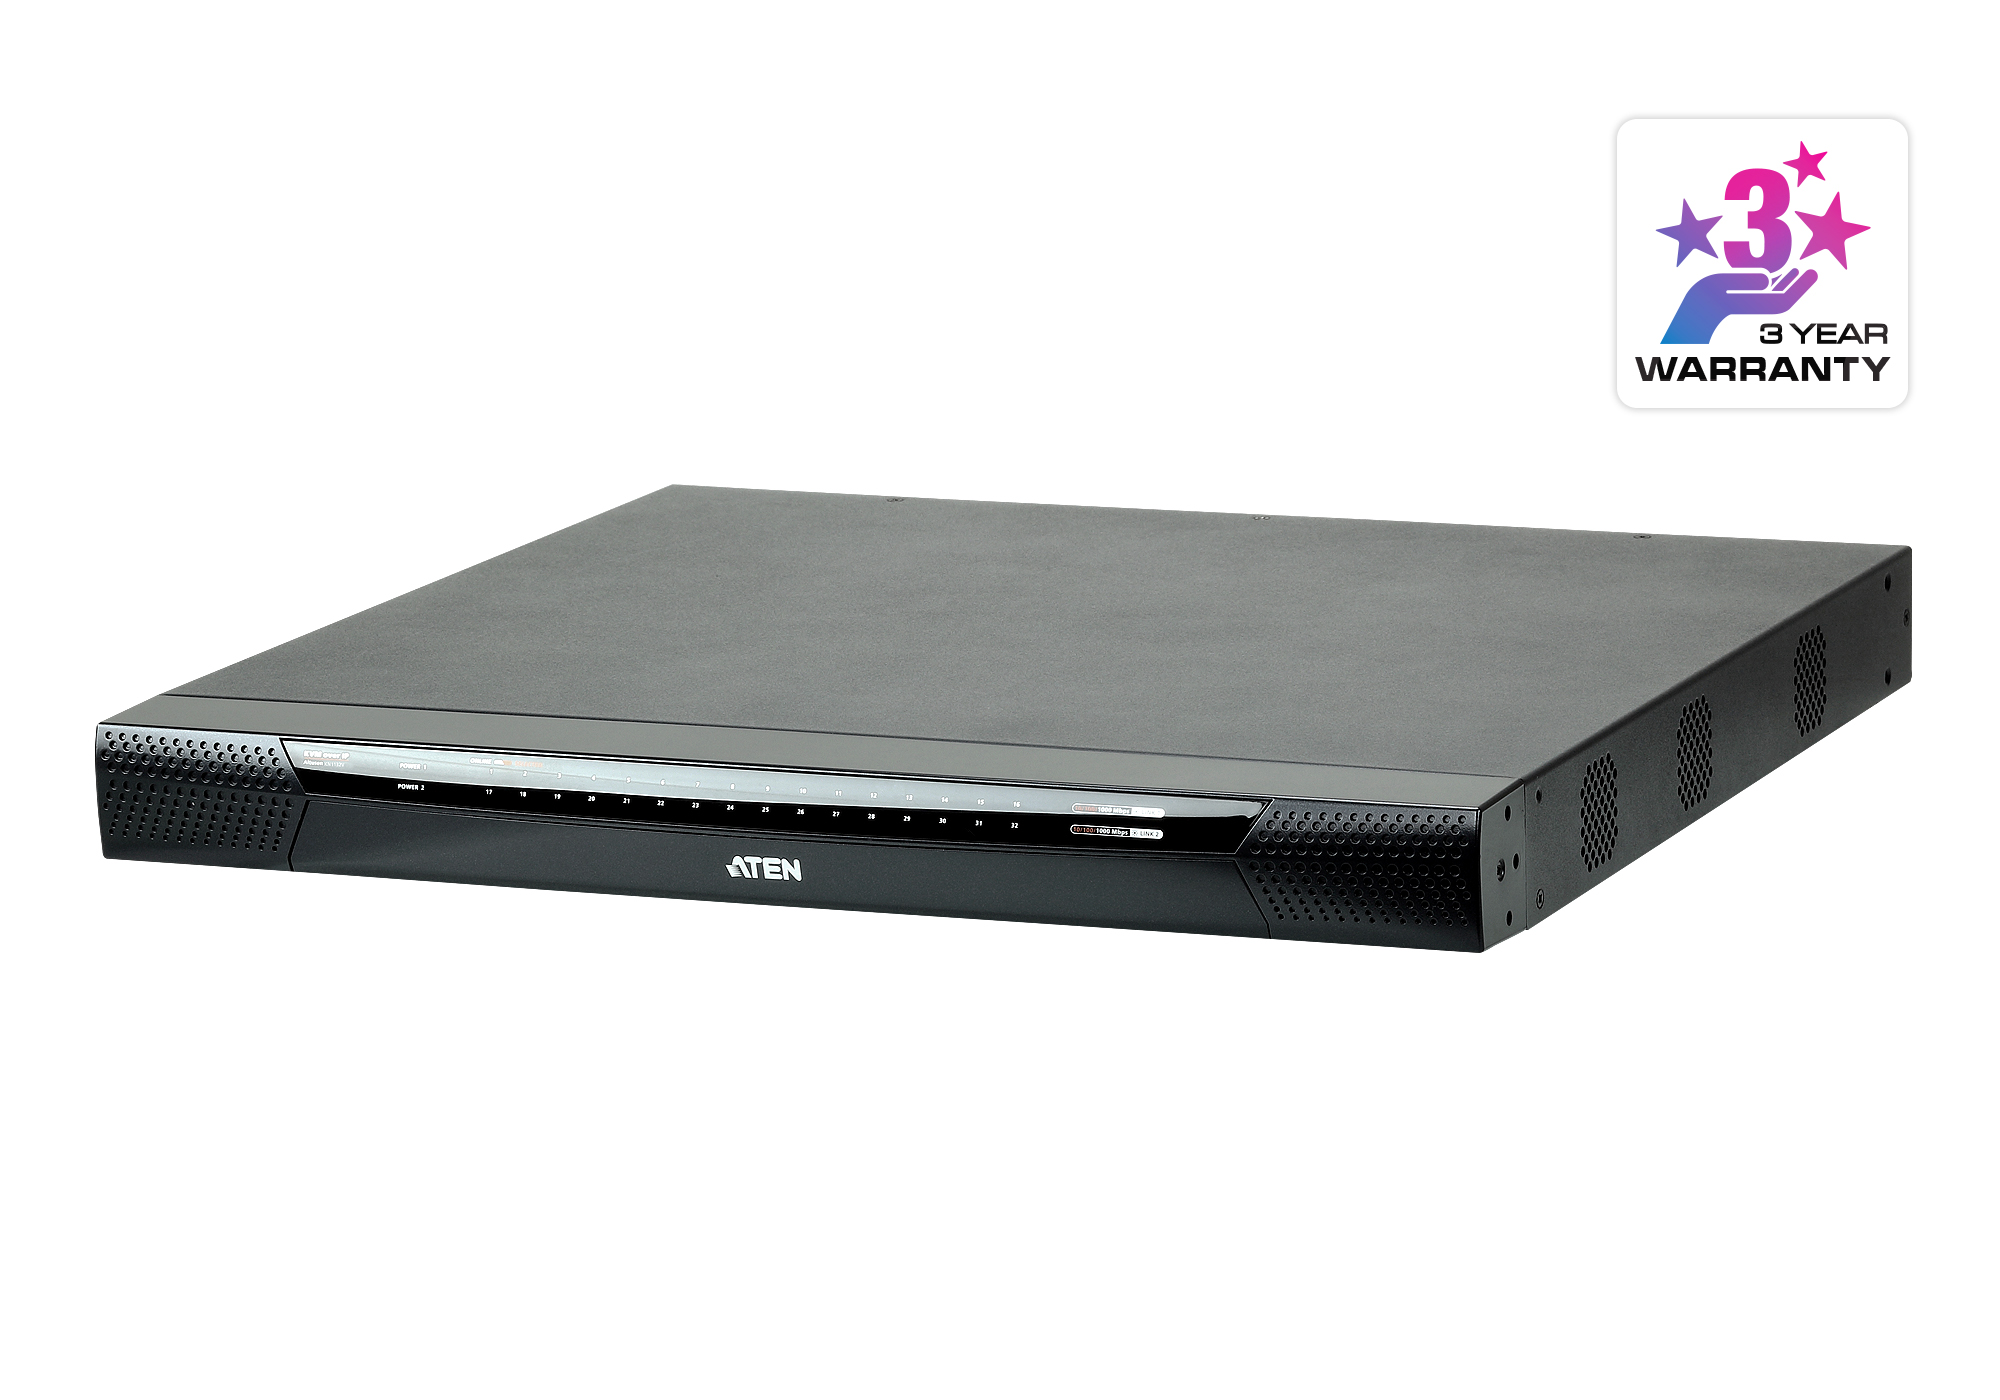 1-Local/1-Remote Access 32-Port Cat 5 KVM over IP Switch with Virtual Media (1920 x 1200)-1